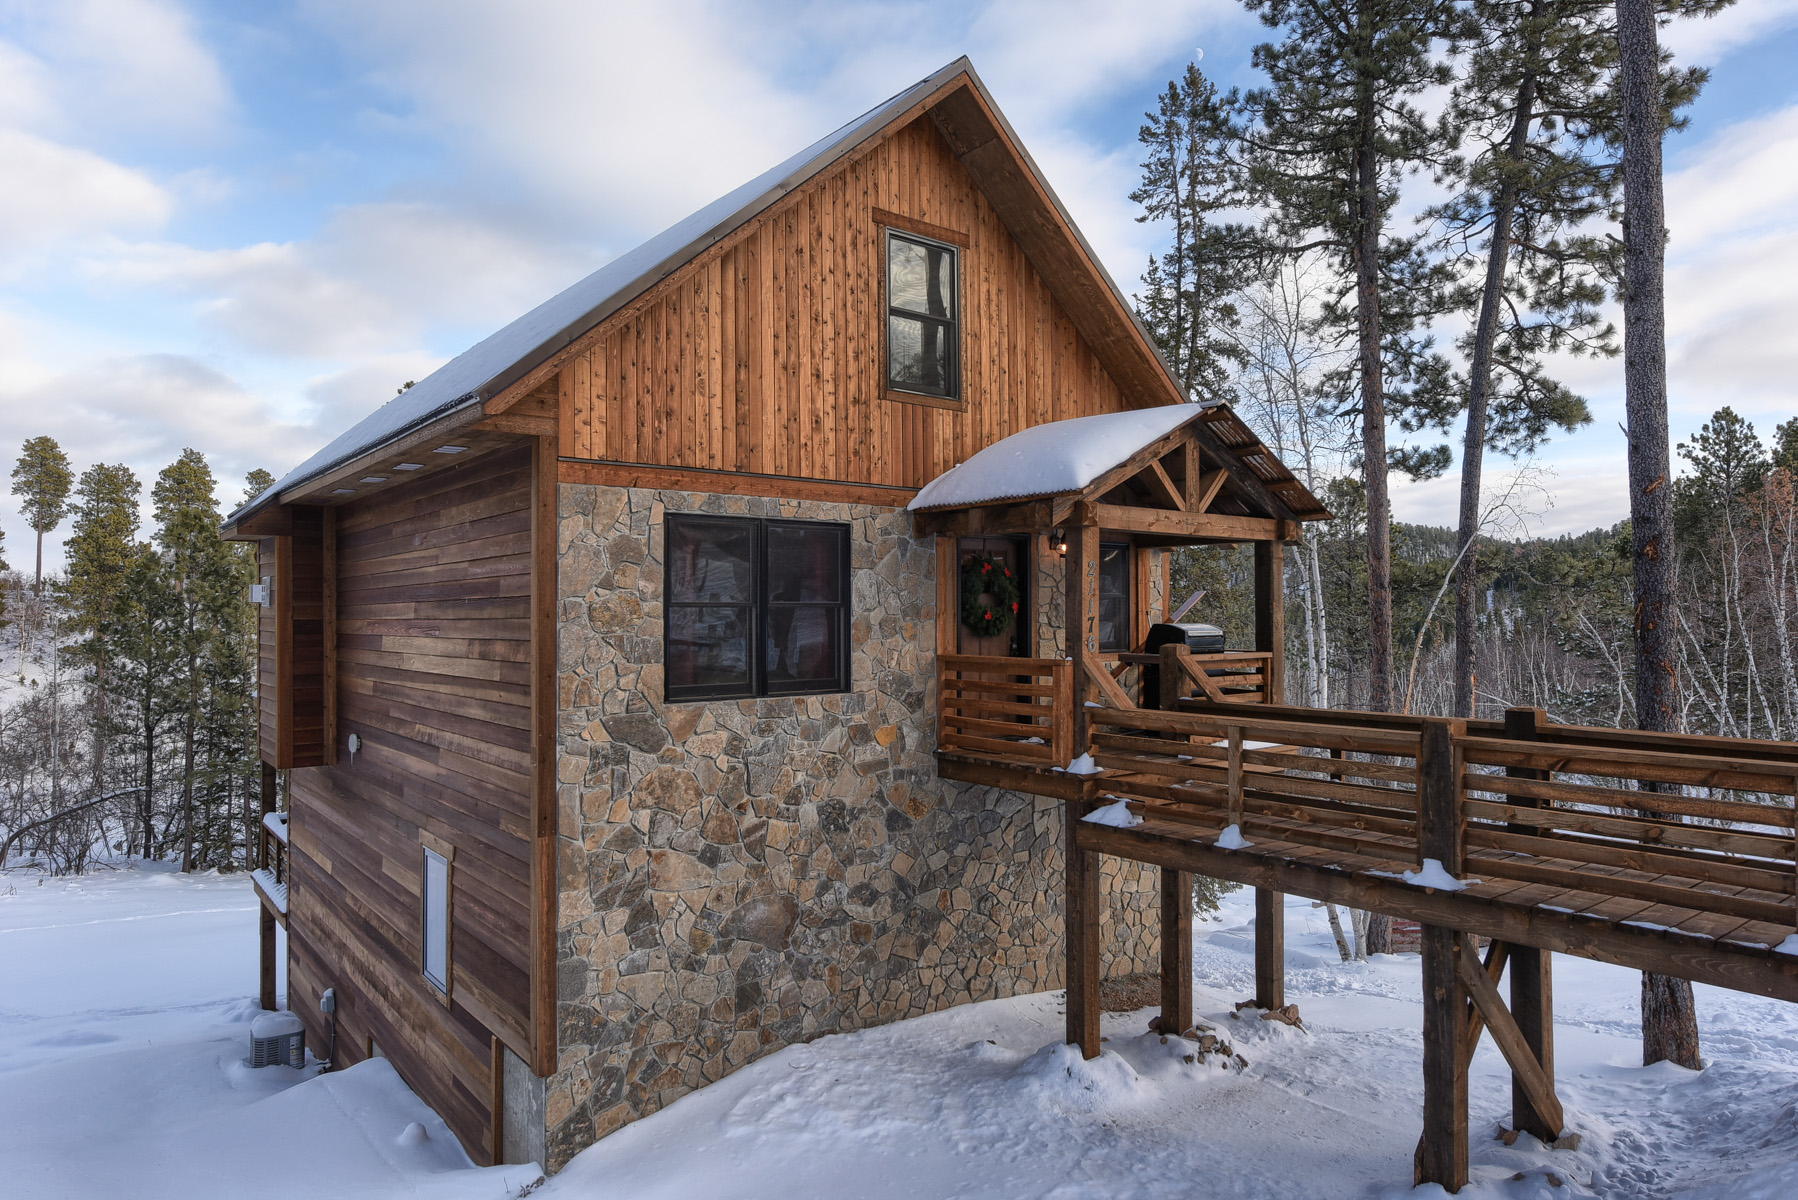 cottages deadwood sd of lodge cole com hotel dakota gallery image property at cabins booking south this us in